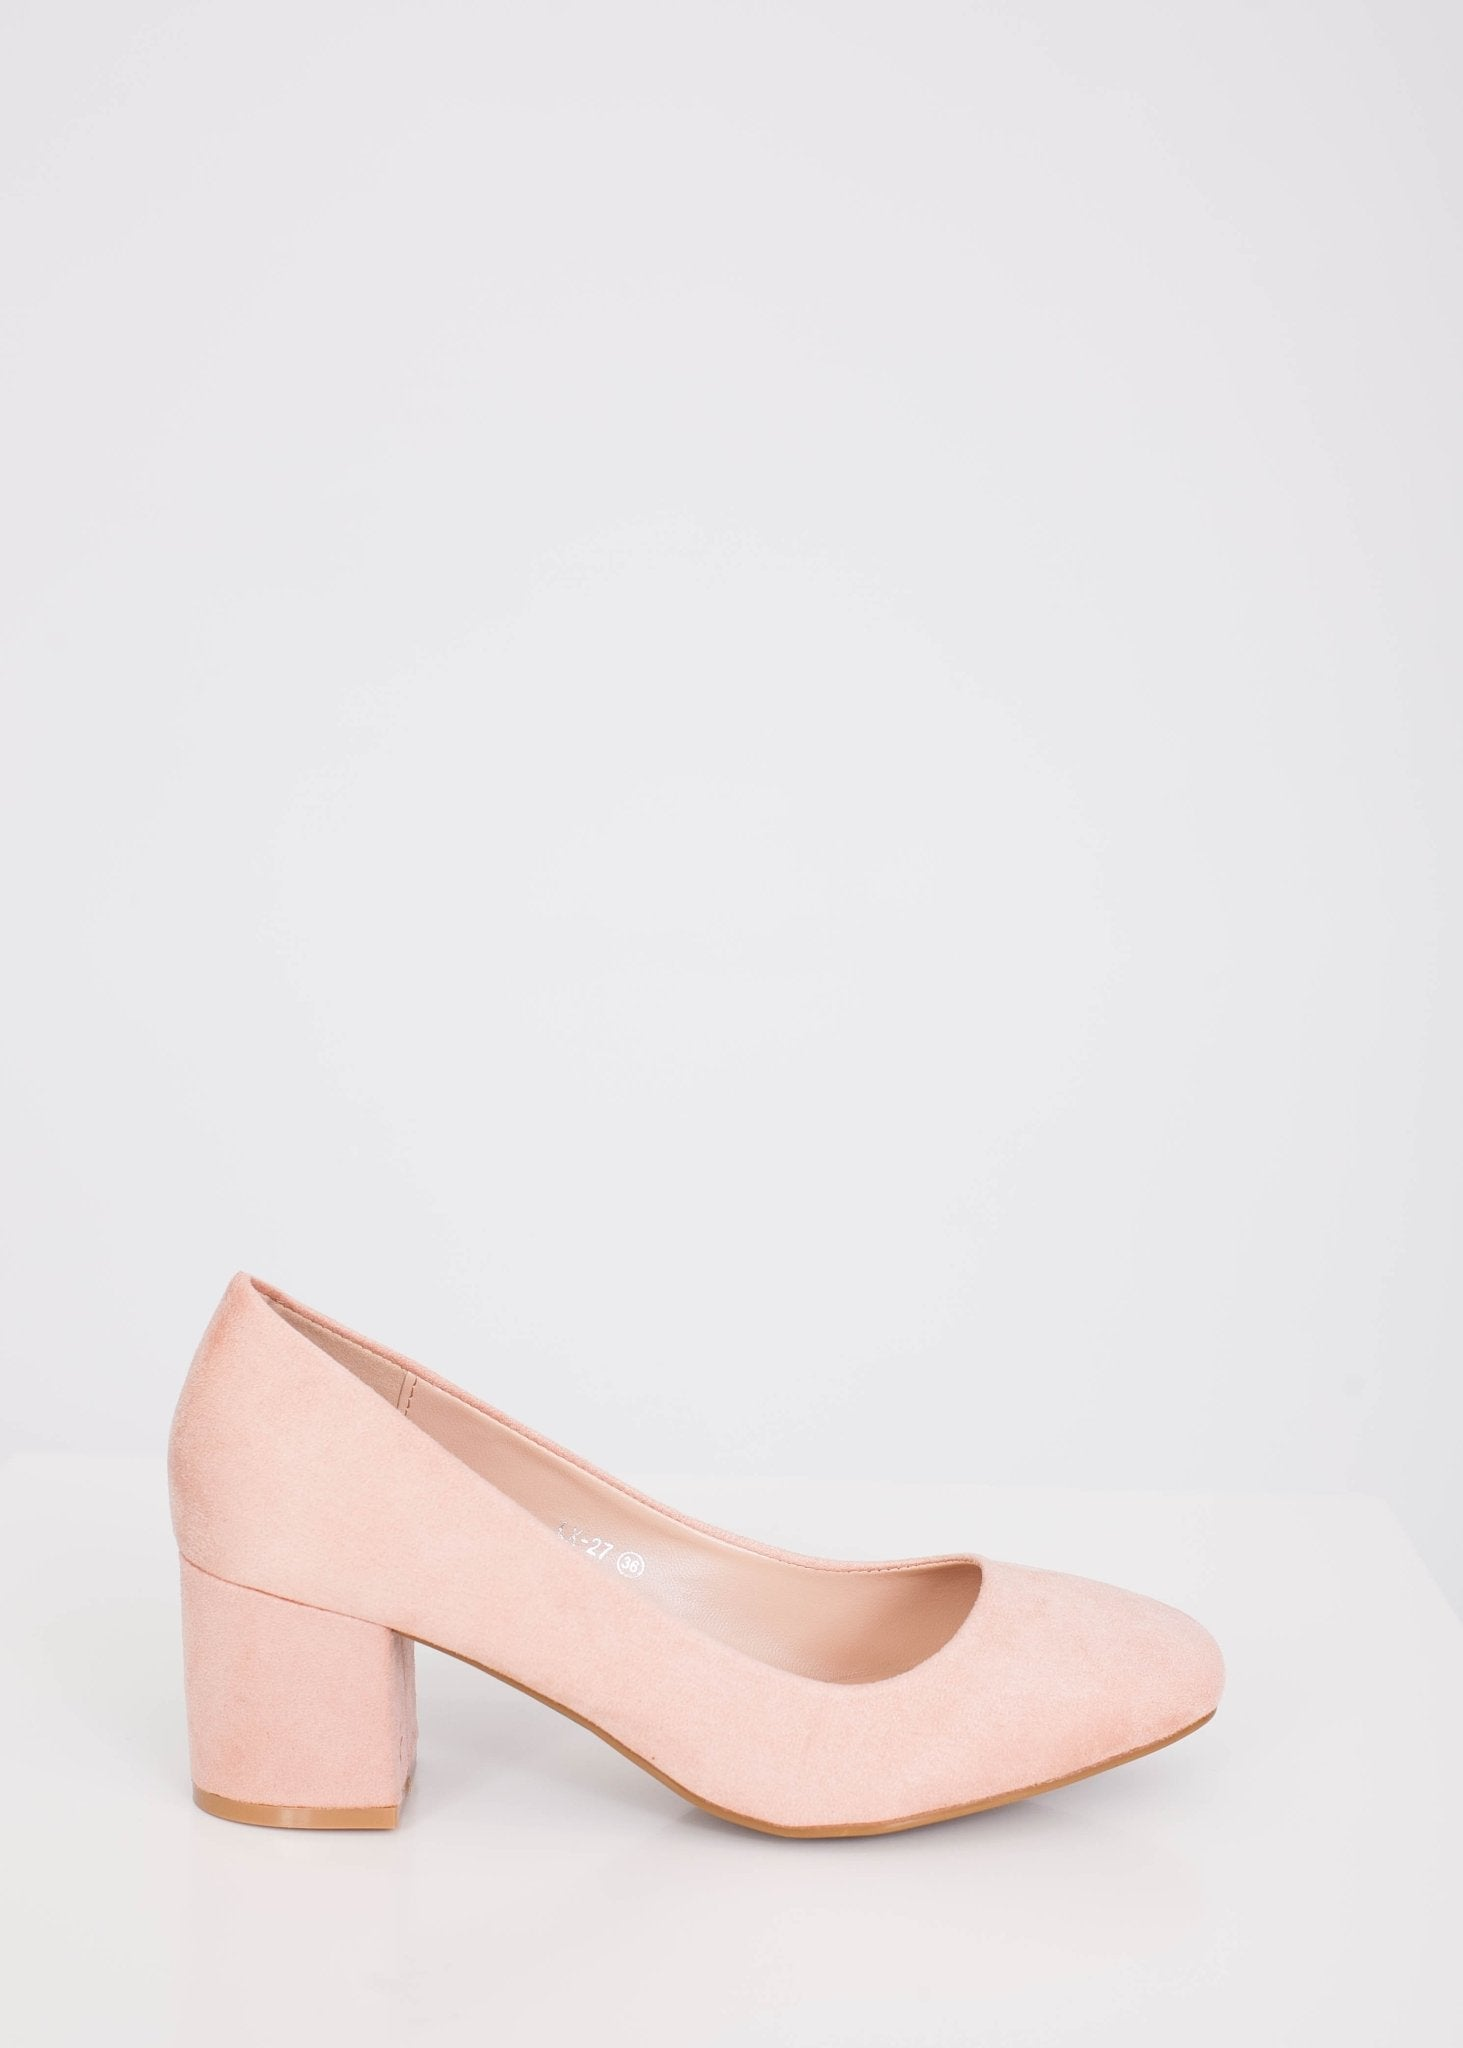 Alice Pink Block Heels - The Walk in Wardrobe